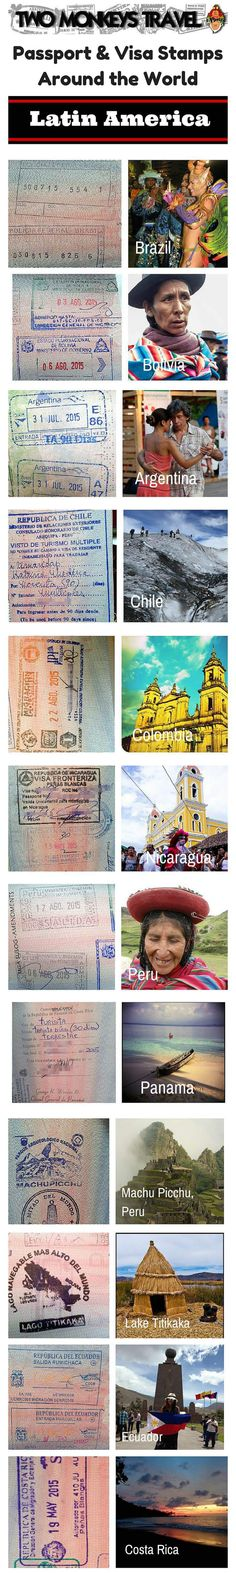 Passport stamps are one of the greatest souvenirs we get from our travels around the world. They are so much more than blotches of ink on paper; they remind us of places we've been, triggering much-treasured memories of the things we saw, the people we met and the adventures we had along the way.